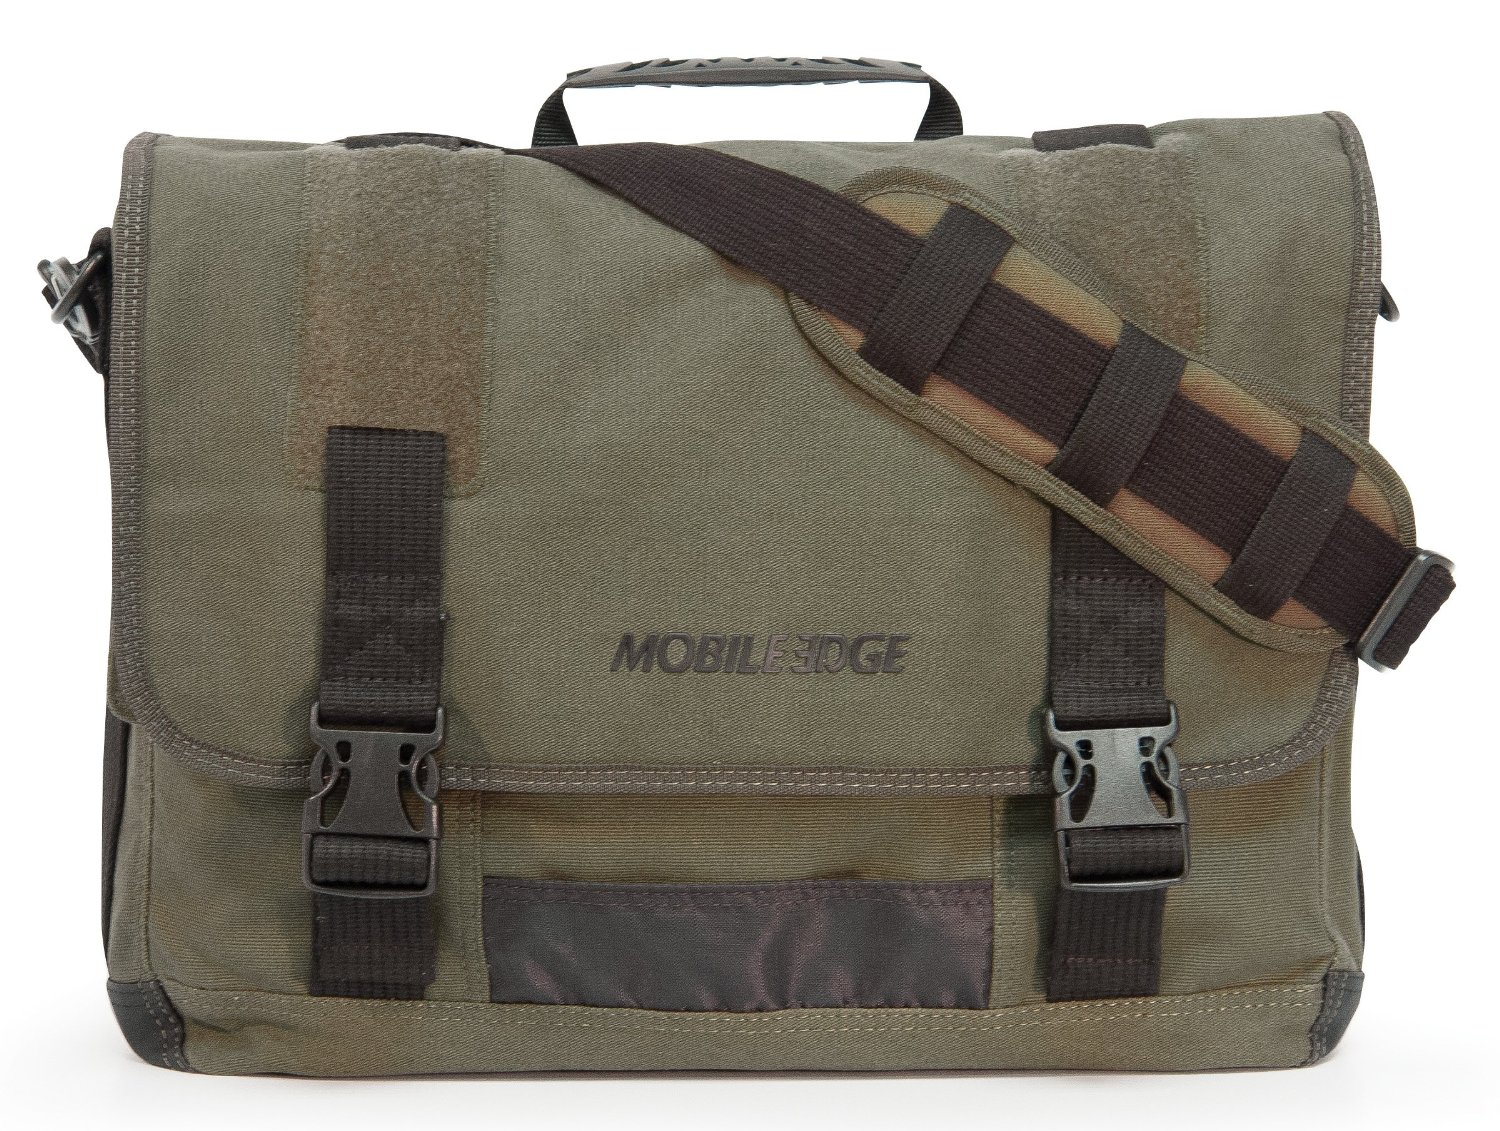 laptop messenger bags mobile edge eco laptop messenger (eco-friendly), 17.3-inch (green) cajrlvo